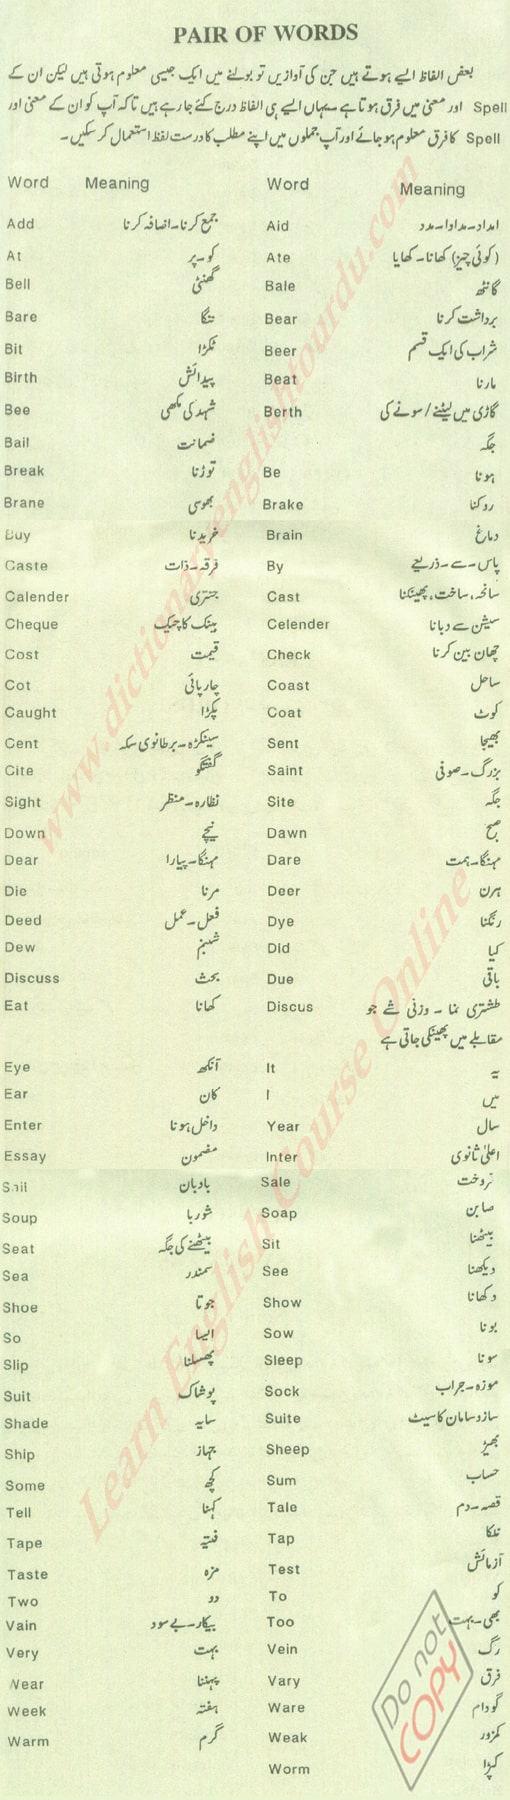 List of Pair of Words and their Meaning in Urdu